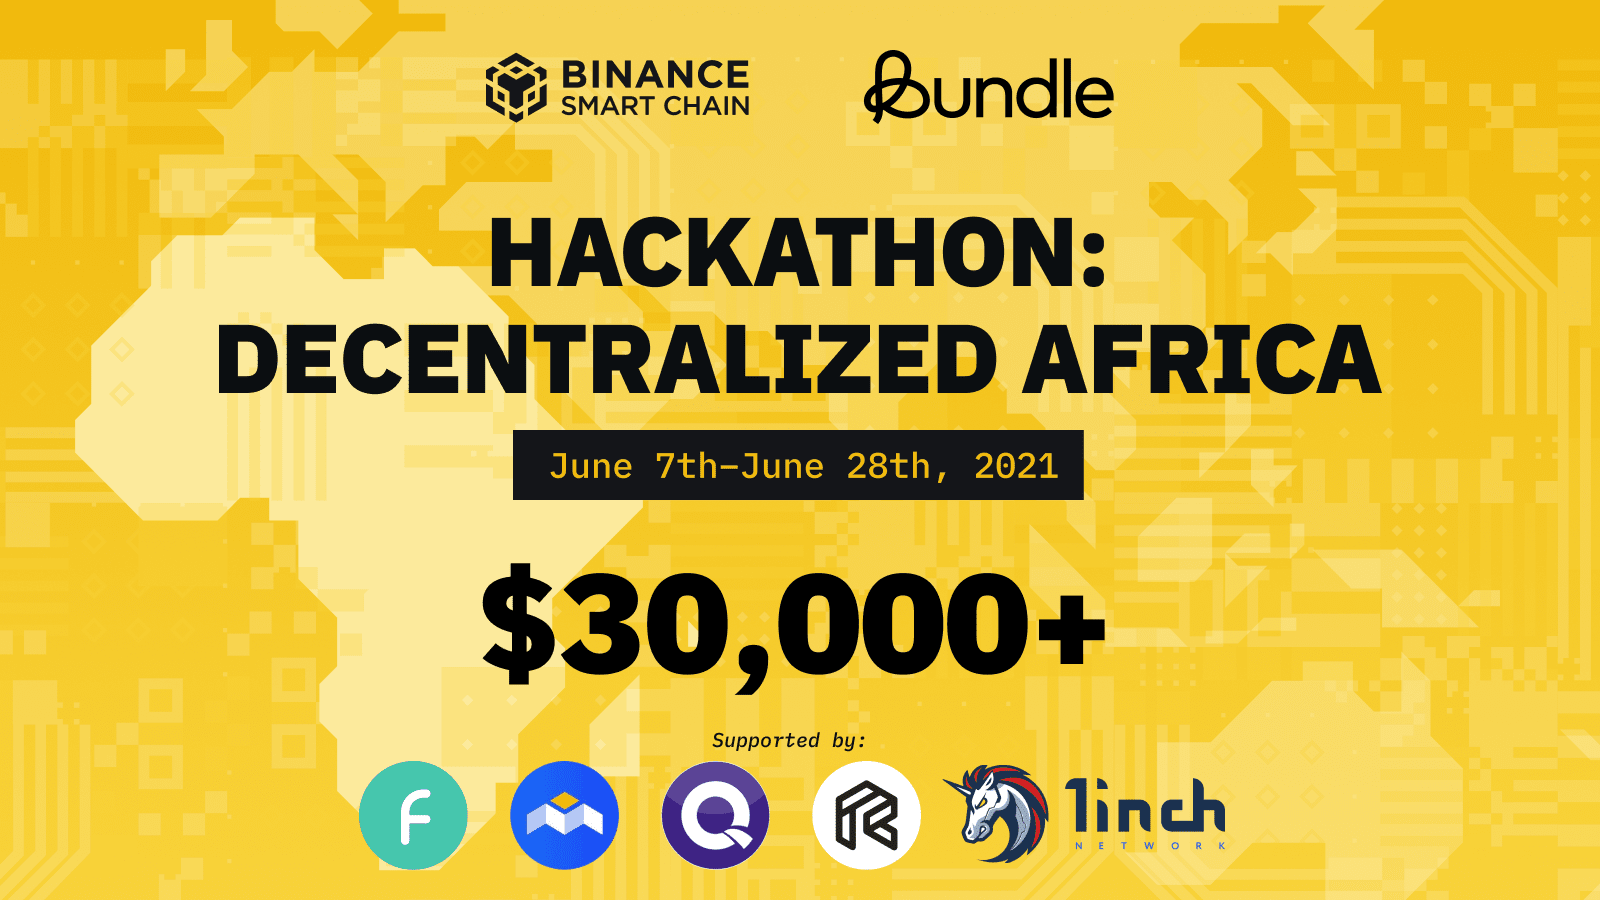 Decentralized Africa: Over $30,000 in Prizes To Hackathon Participants in Africa Cryptocurrency Trading Signals, Strategies & Templates   DexStrats